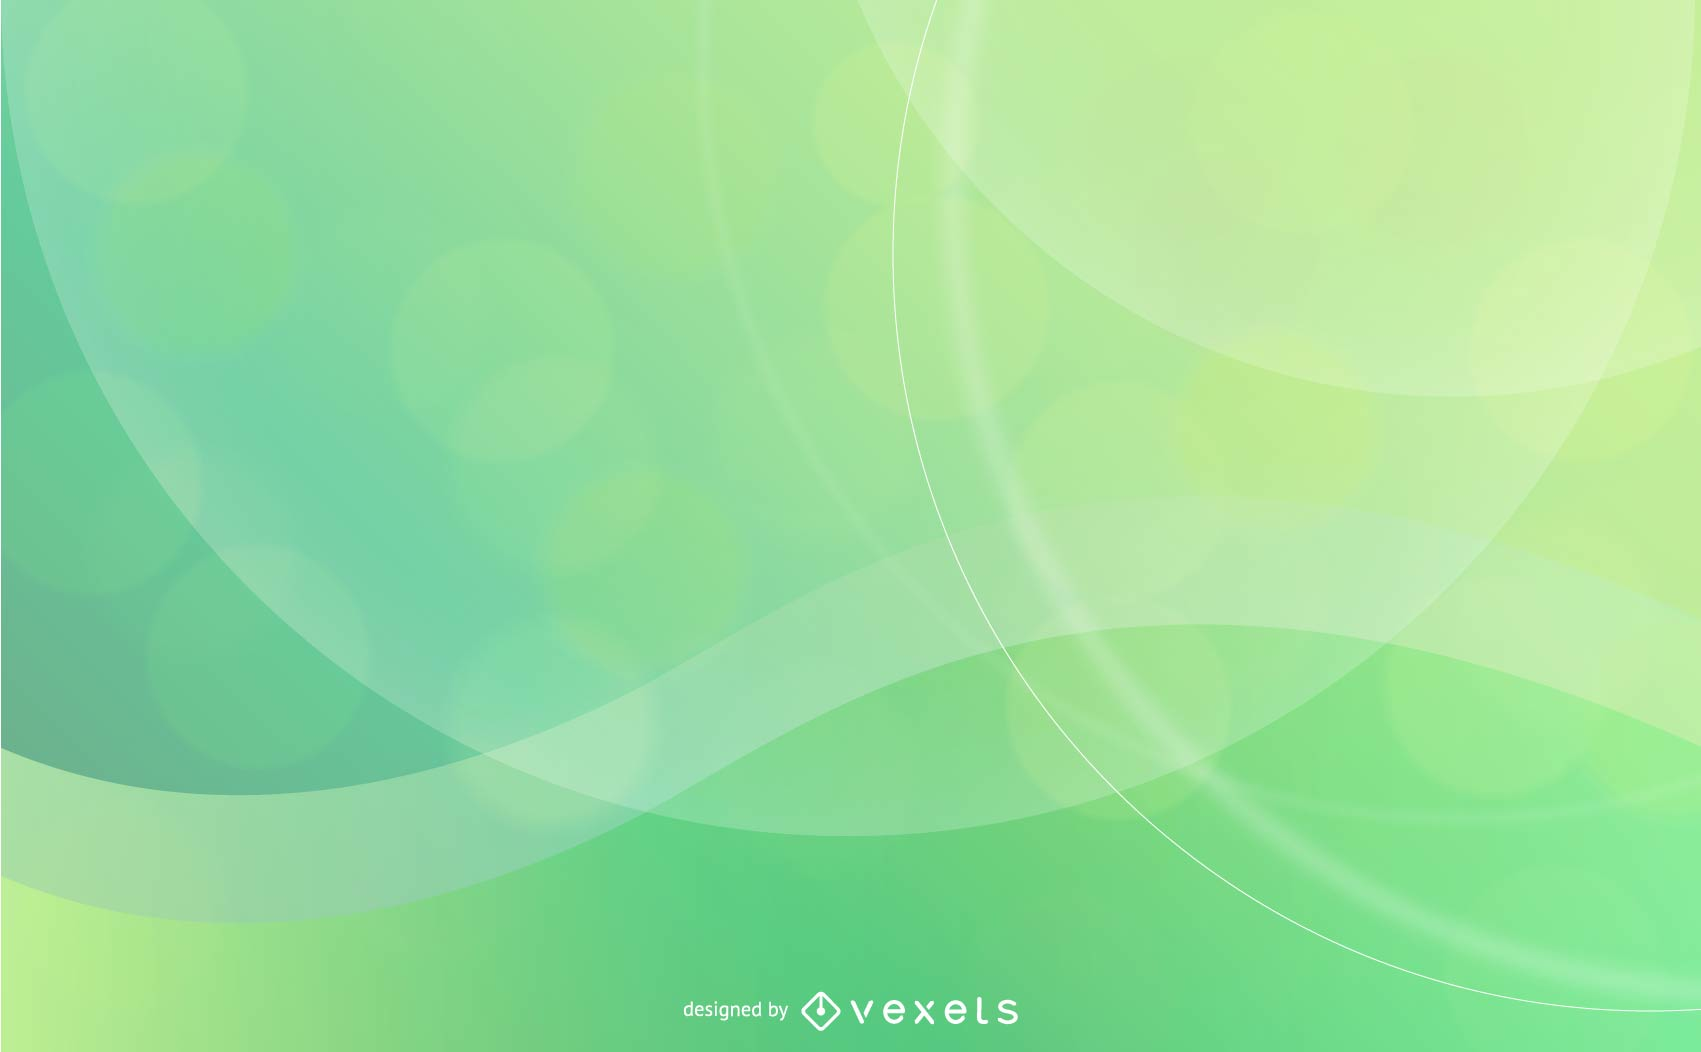 Abstract Background Design In Green And Yellow Vector Download